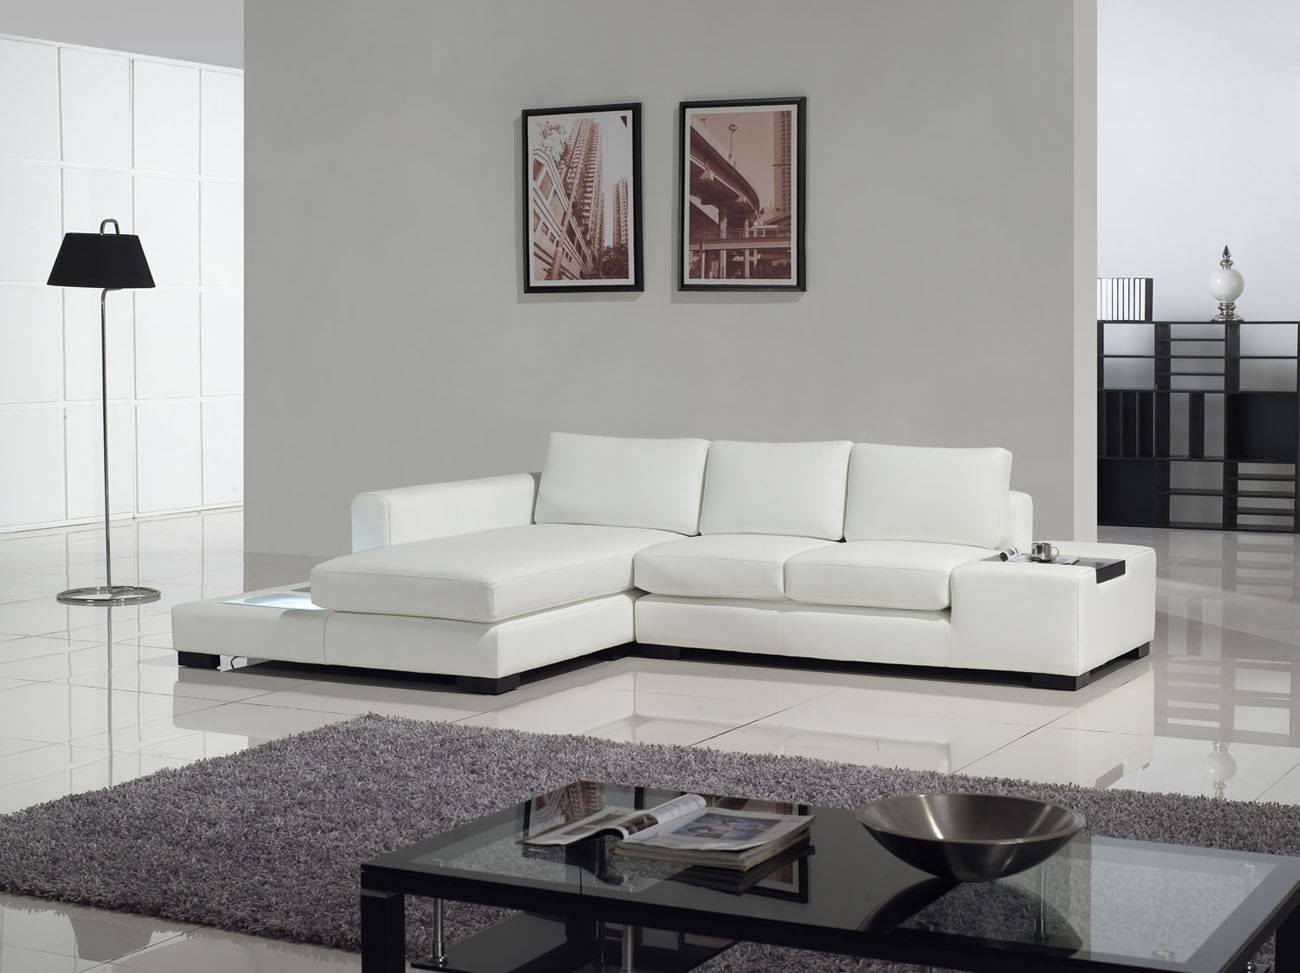 Sofa Chairs intended for White Modern Sofas (Image 17 of 30)